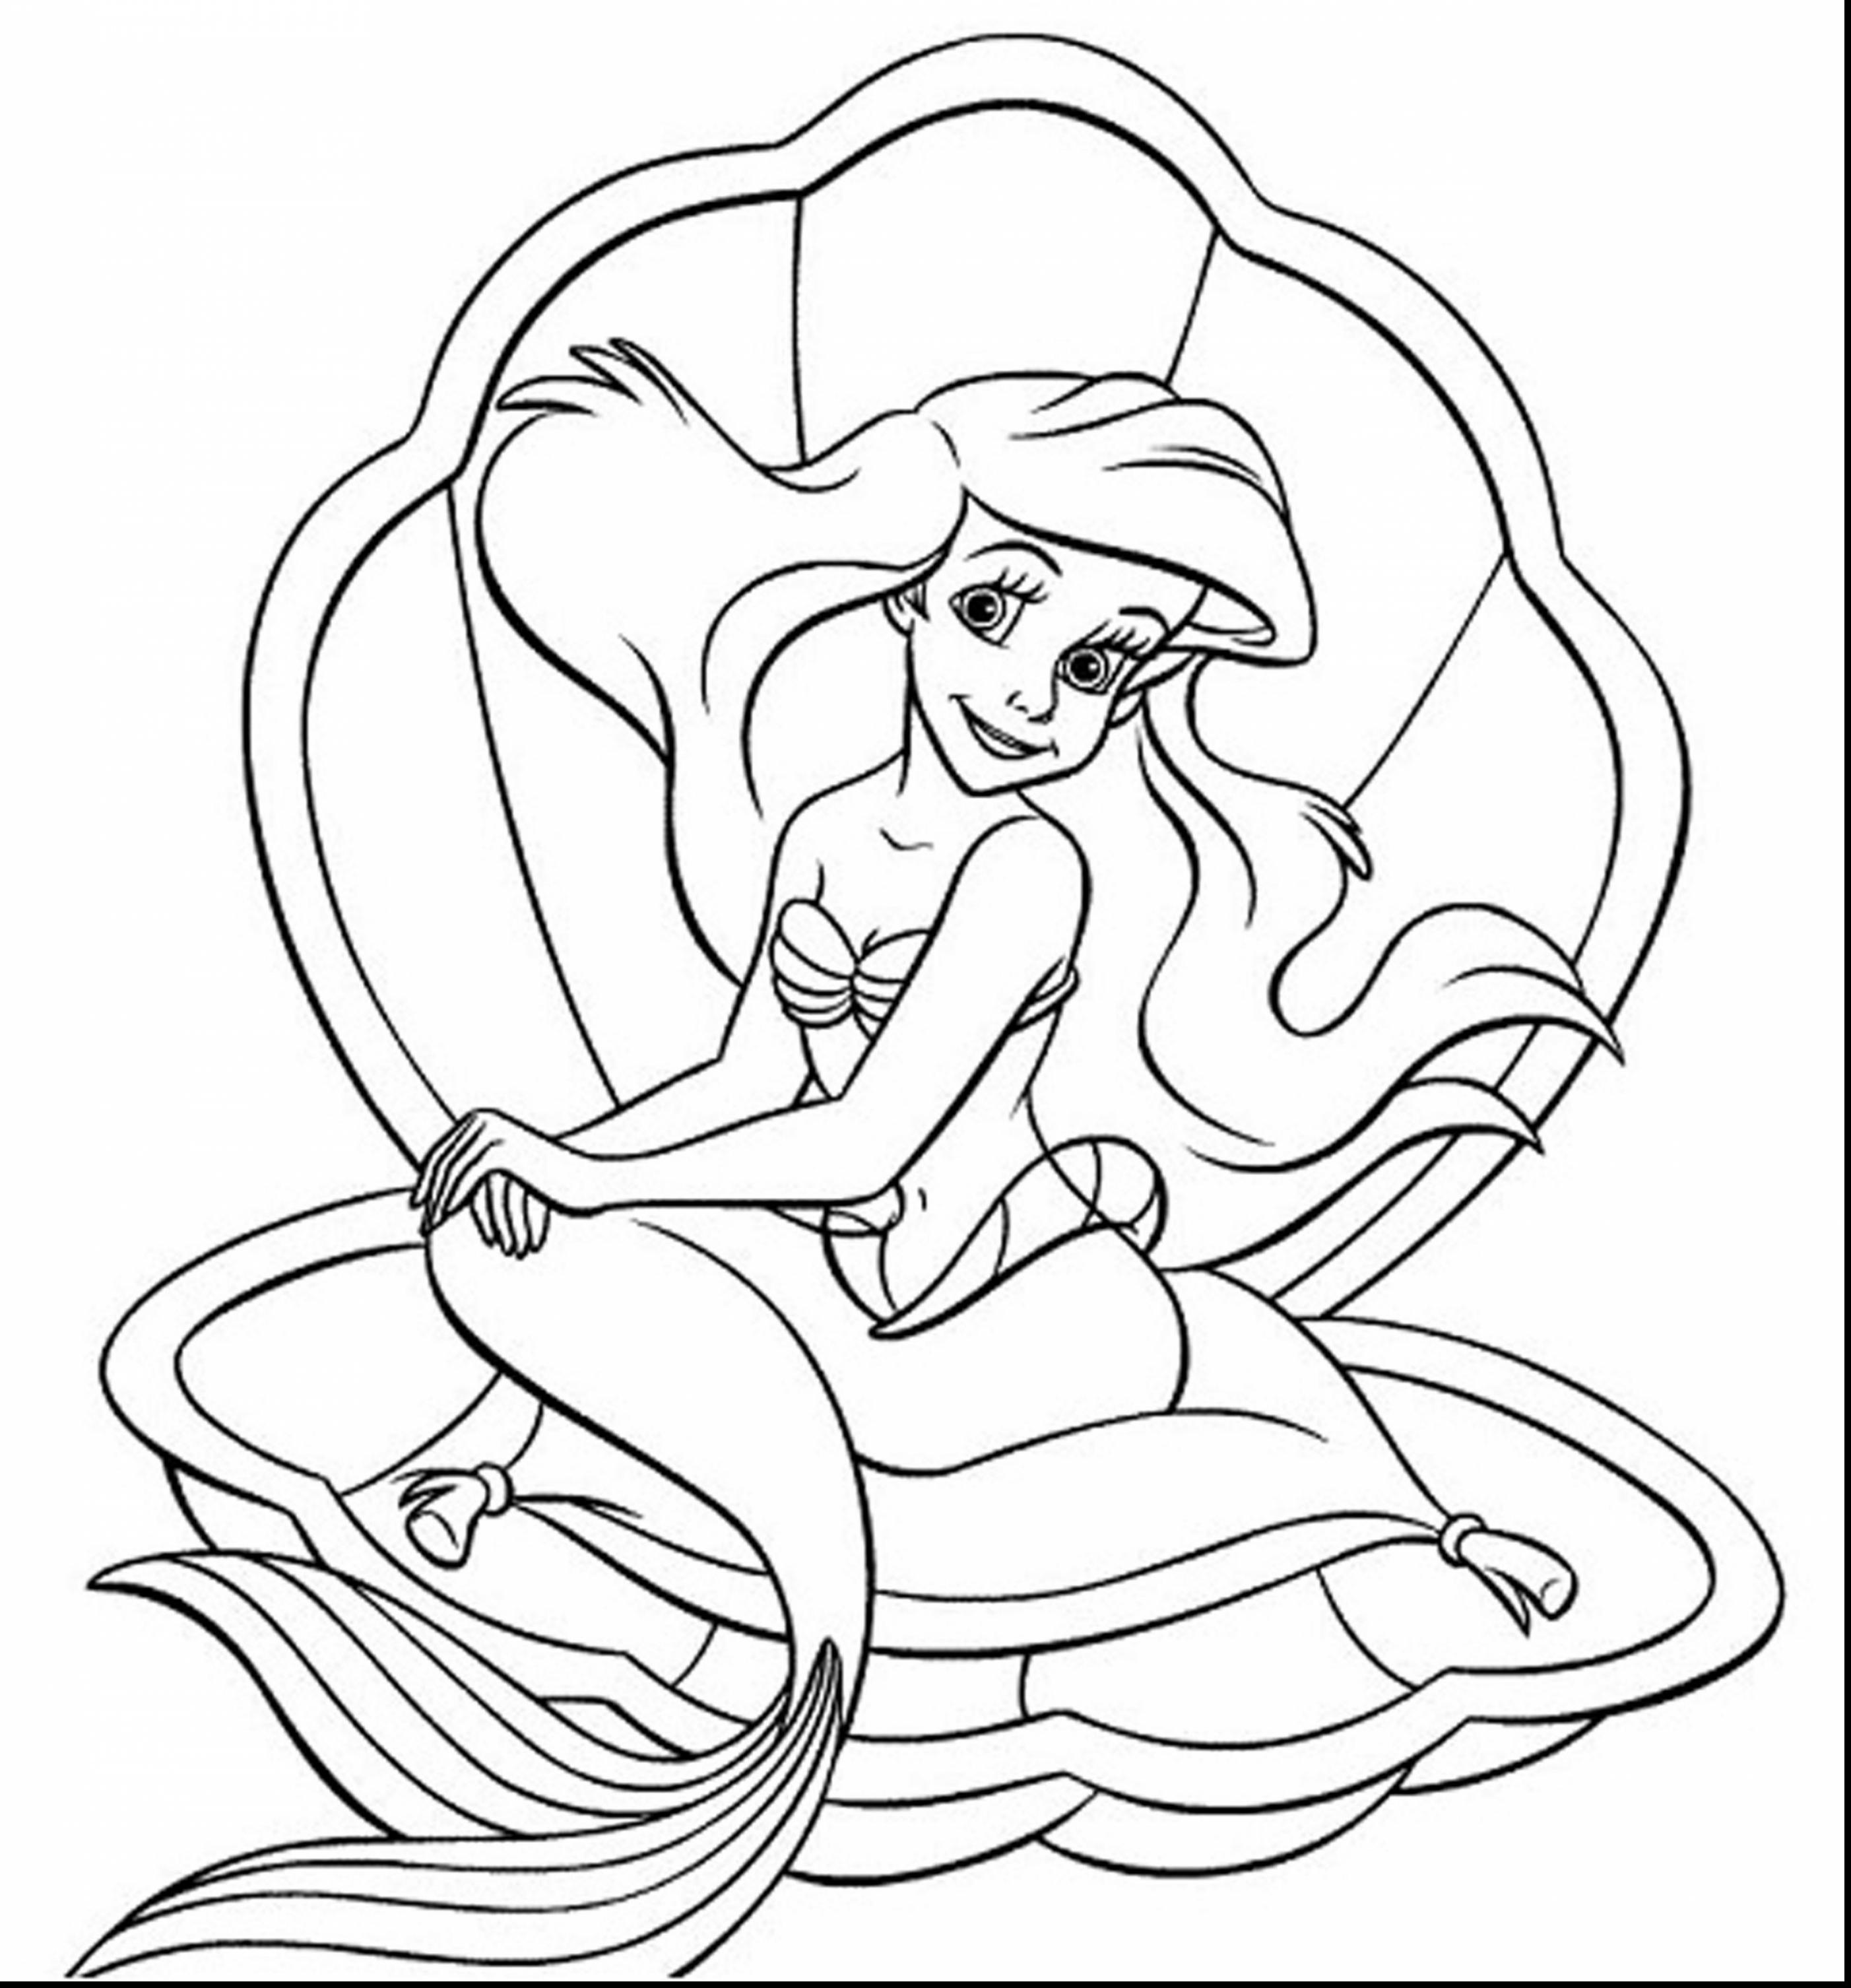 Princess sofia drawing at free for for Princess sofia coloring pages printable